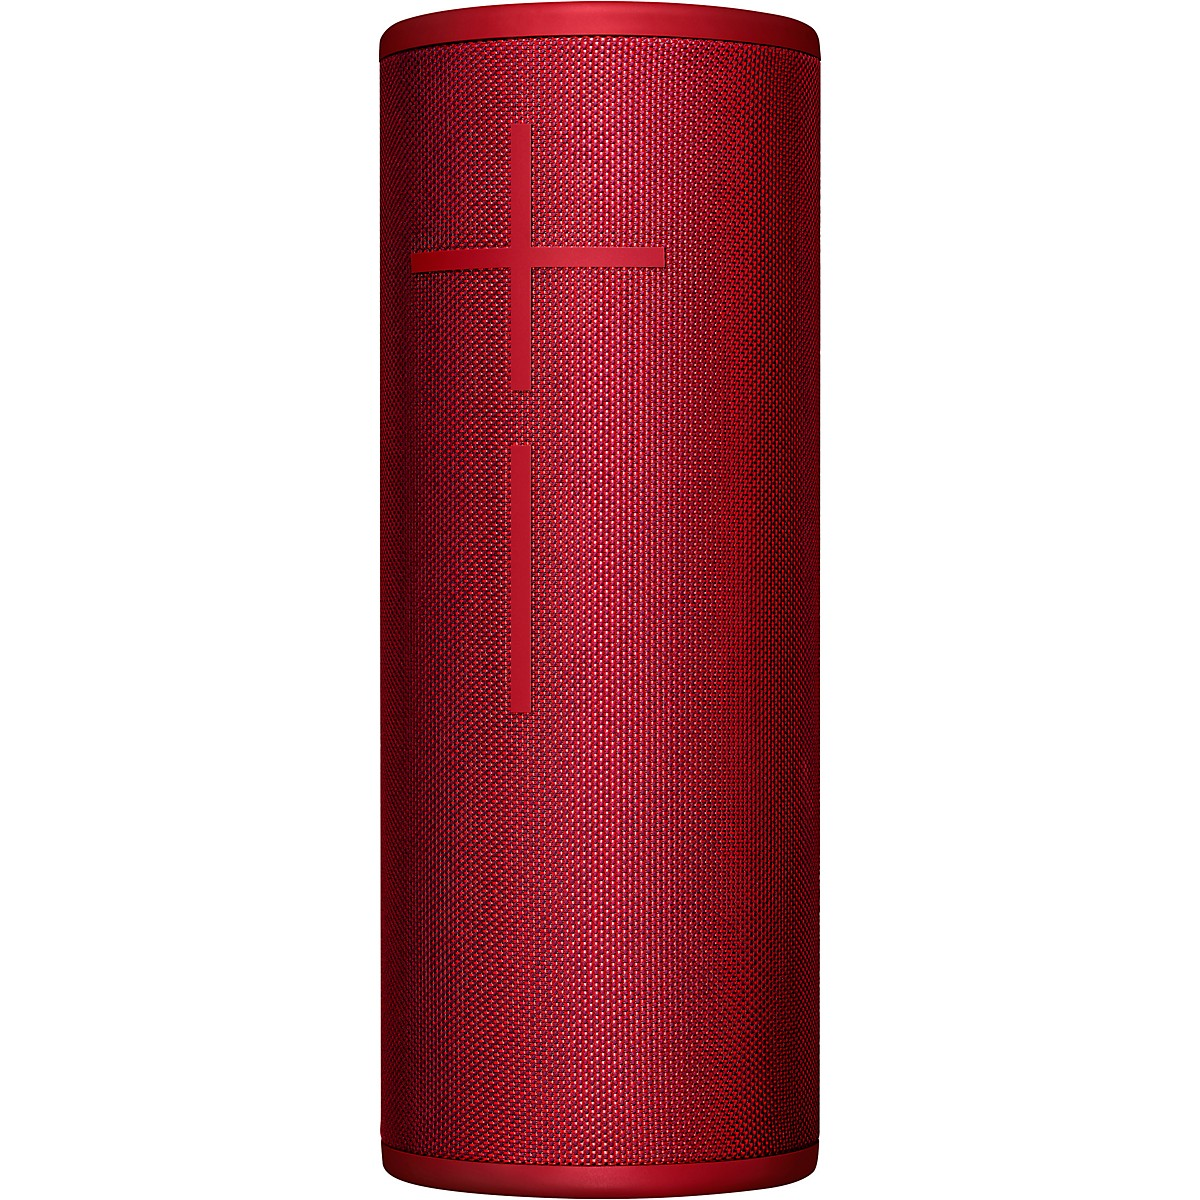 Ultimate Ears Megaboom 3 Portable Wireless Speaker